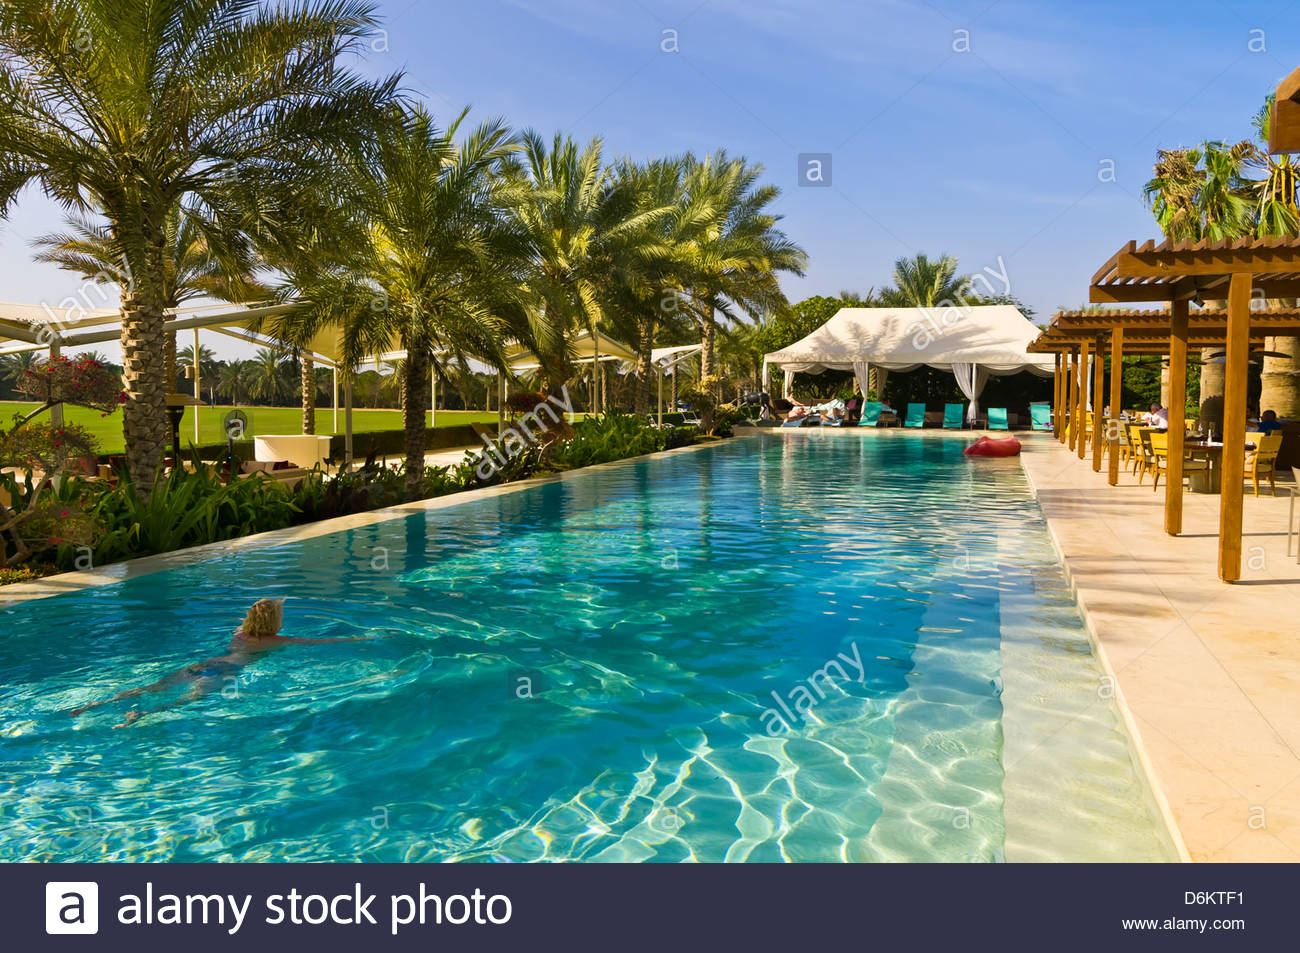 Swimming Pool Desert Palm Hotel Dubai United Arab Emirates Stock Photo 55755365 Alamy